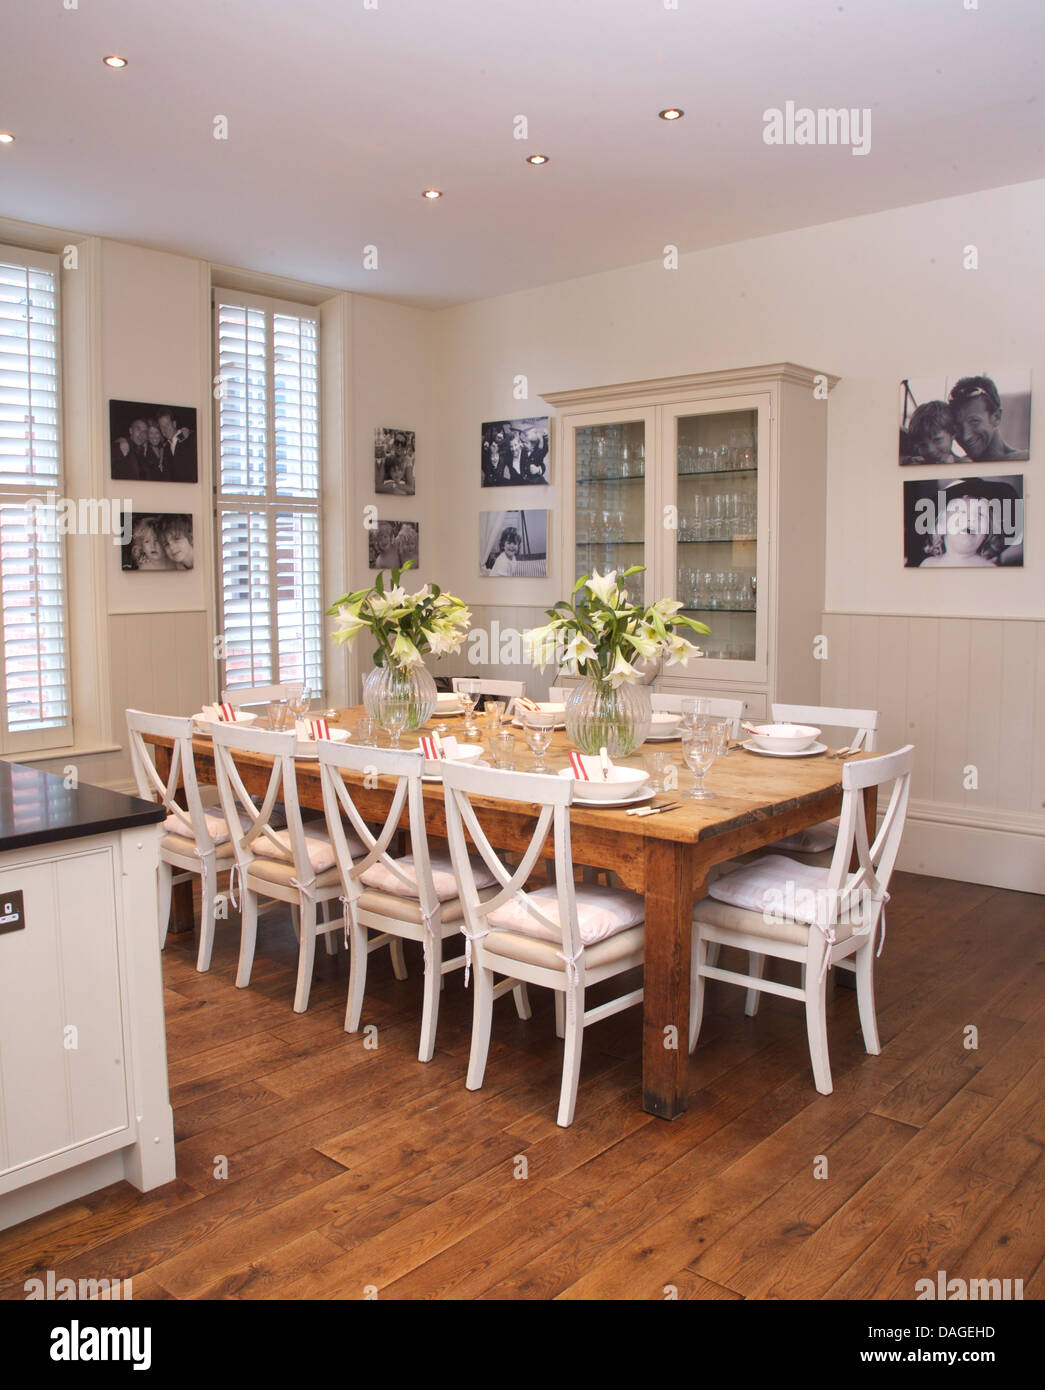 White Chairs At Simple Wood Table In Modern White Kitchen Dining Room With  Wooden Flooring And Framed Black+white Photographs